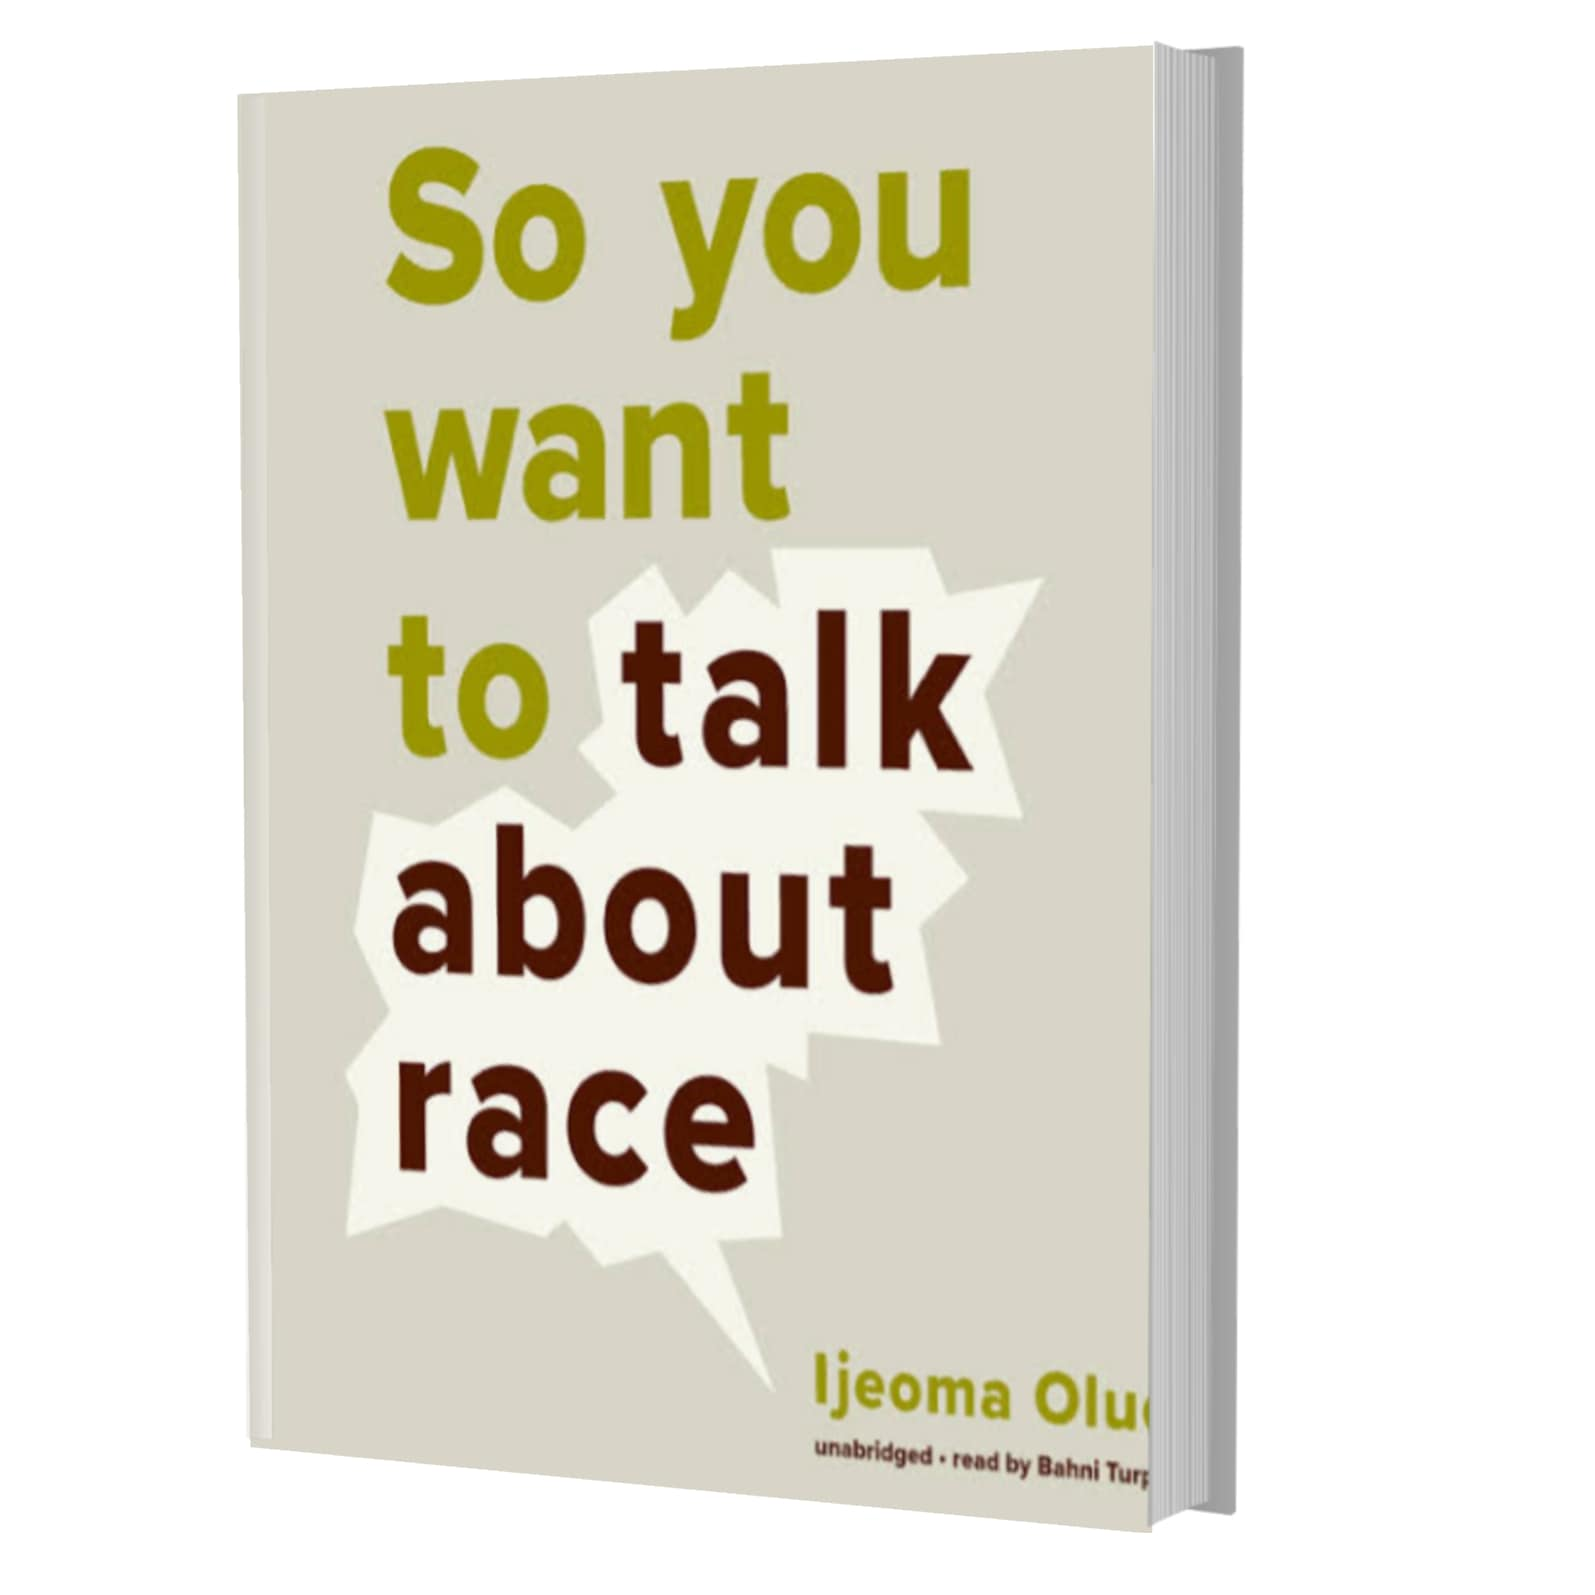 So you want to talk about race- Ijeoma Oluo